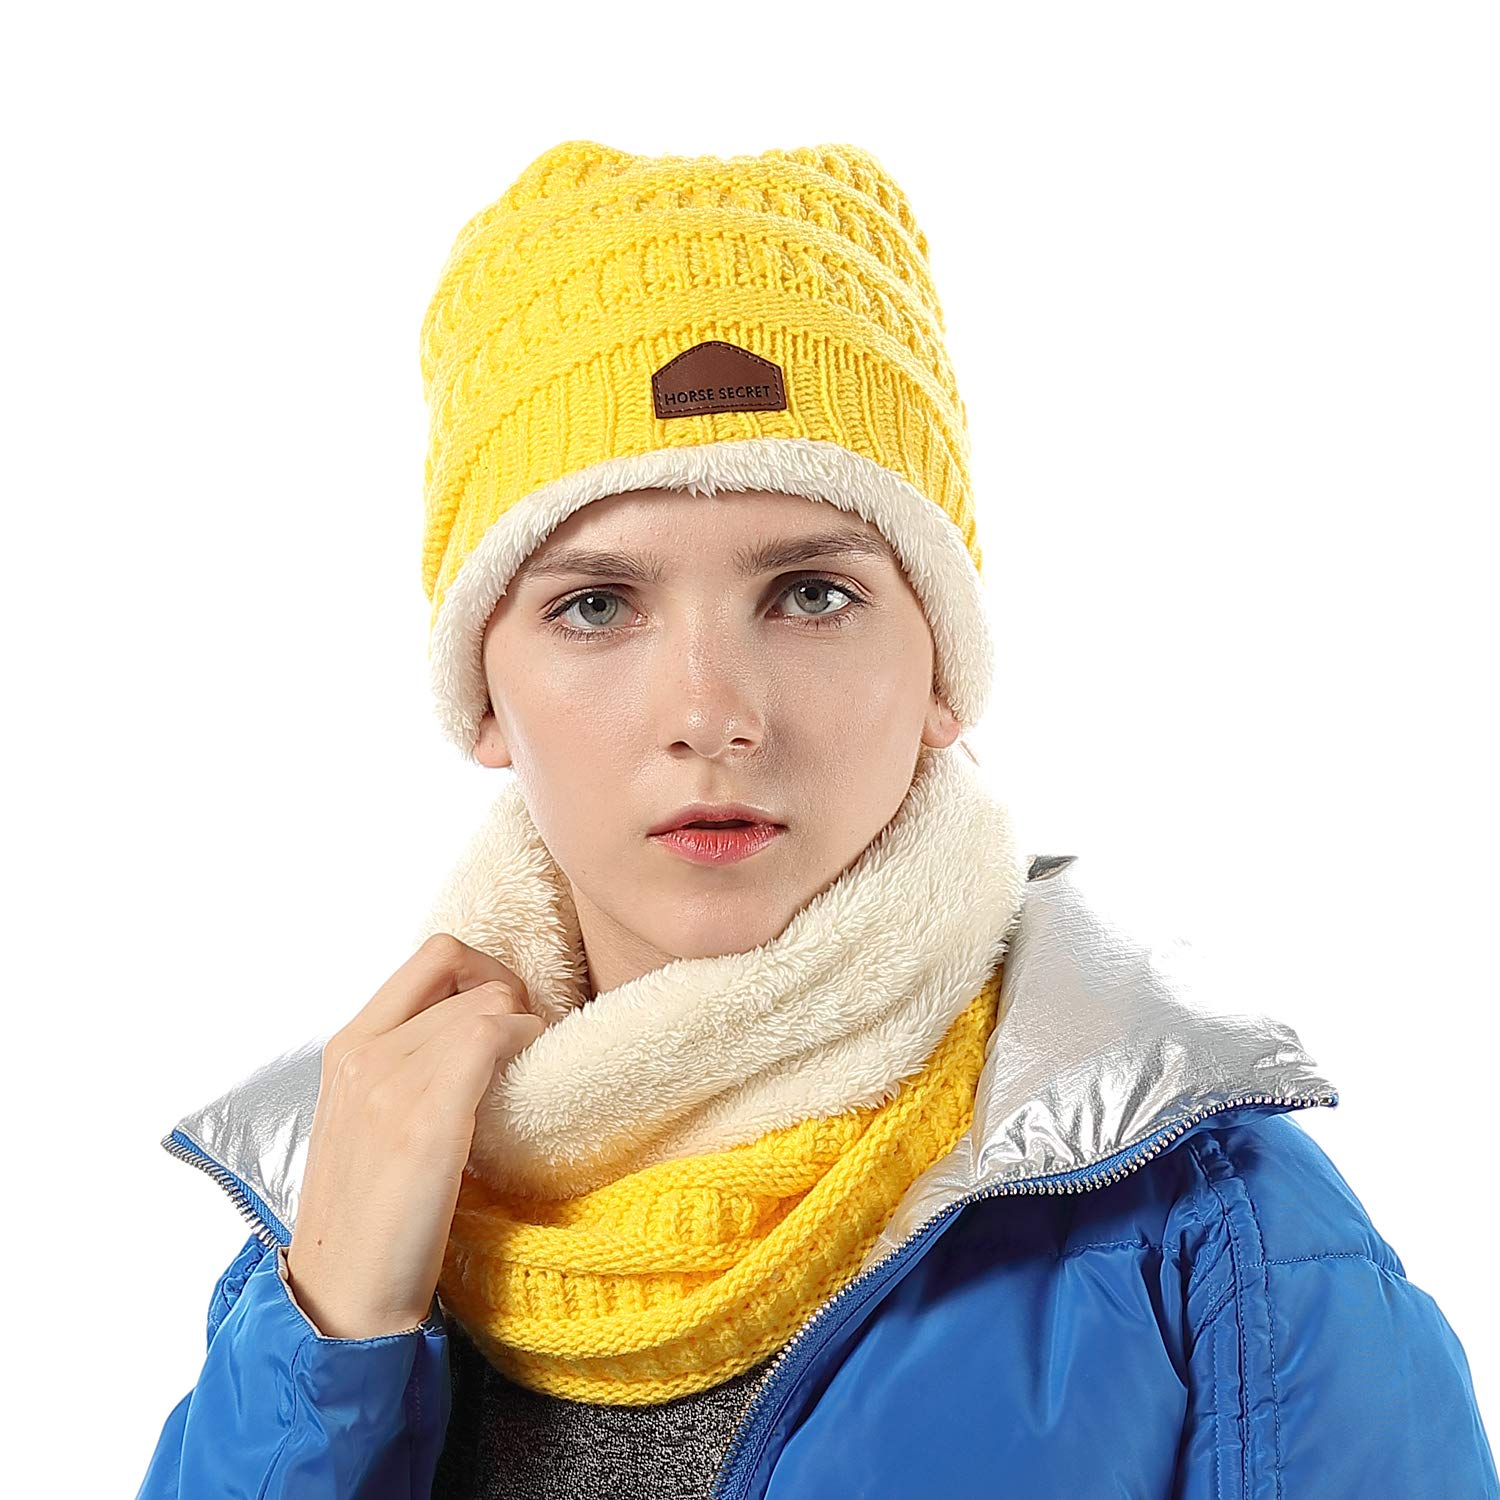 ba7be2155 Ponytail Messy Bun BeanieTail Soft Stretch Cable Knit Hat Scarf Set ...